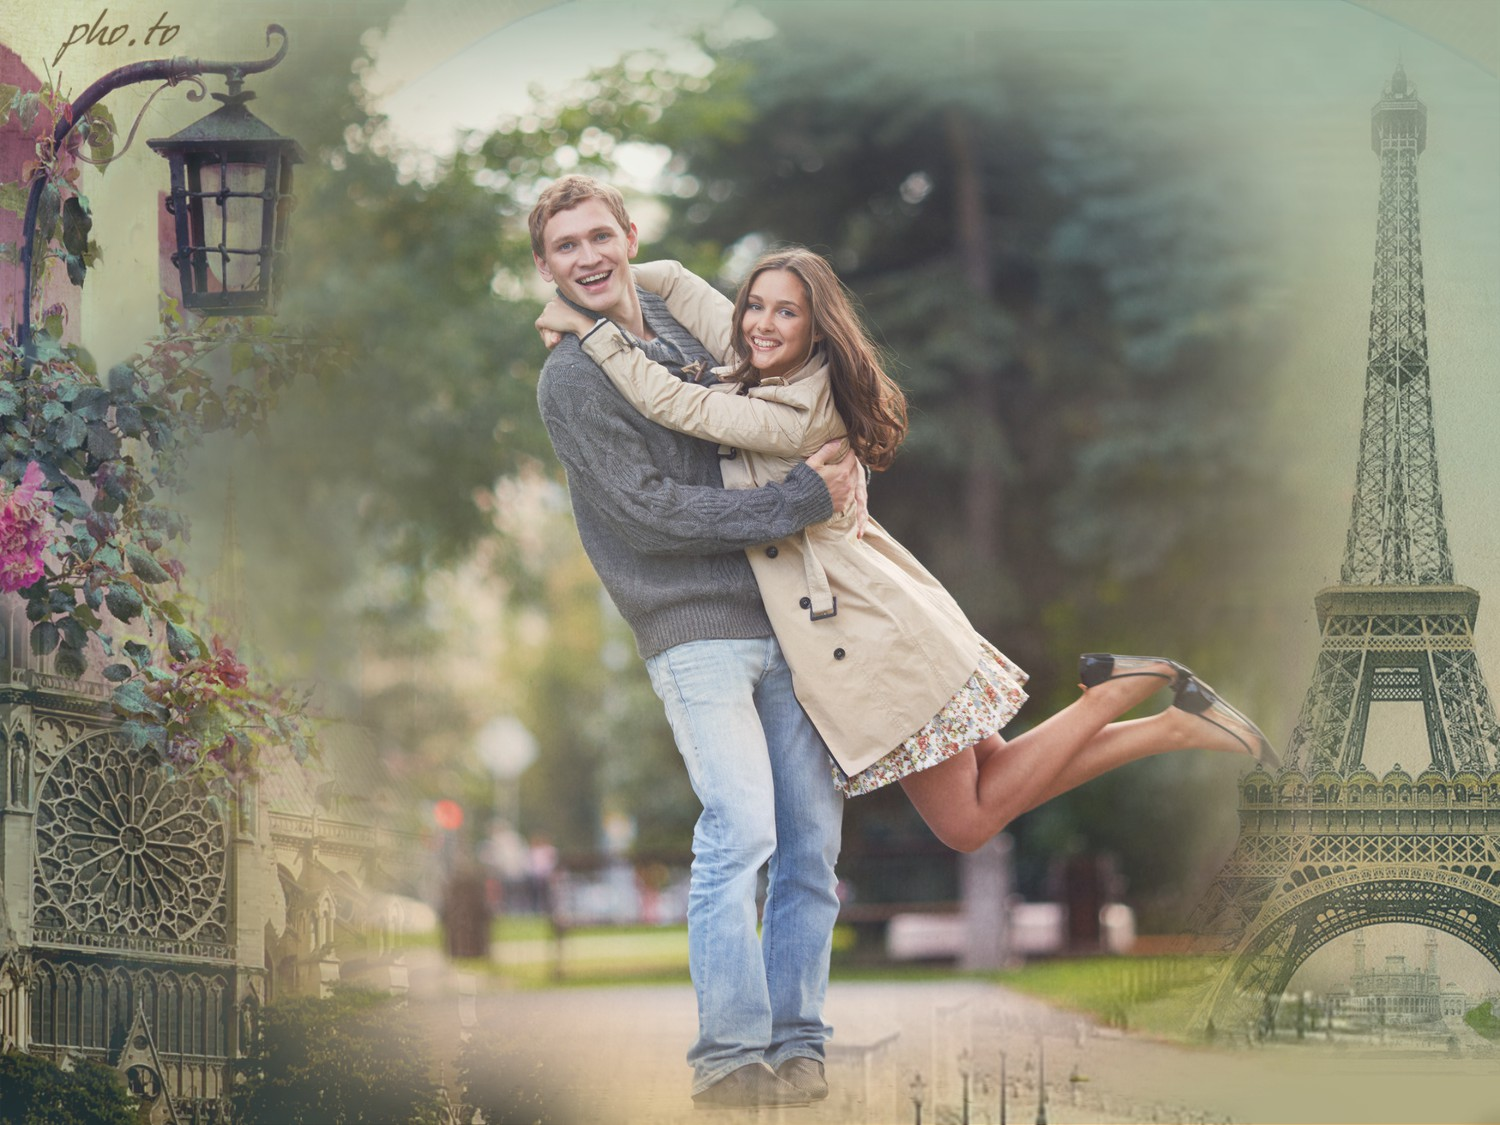 The photo background is changed to a romantic with vintage photo frame.